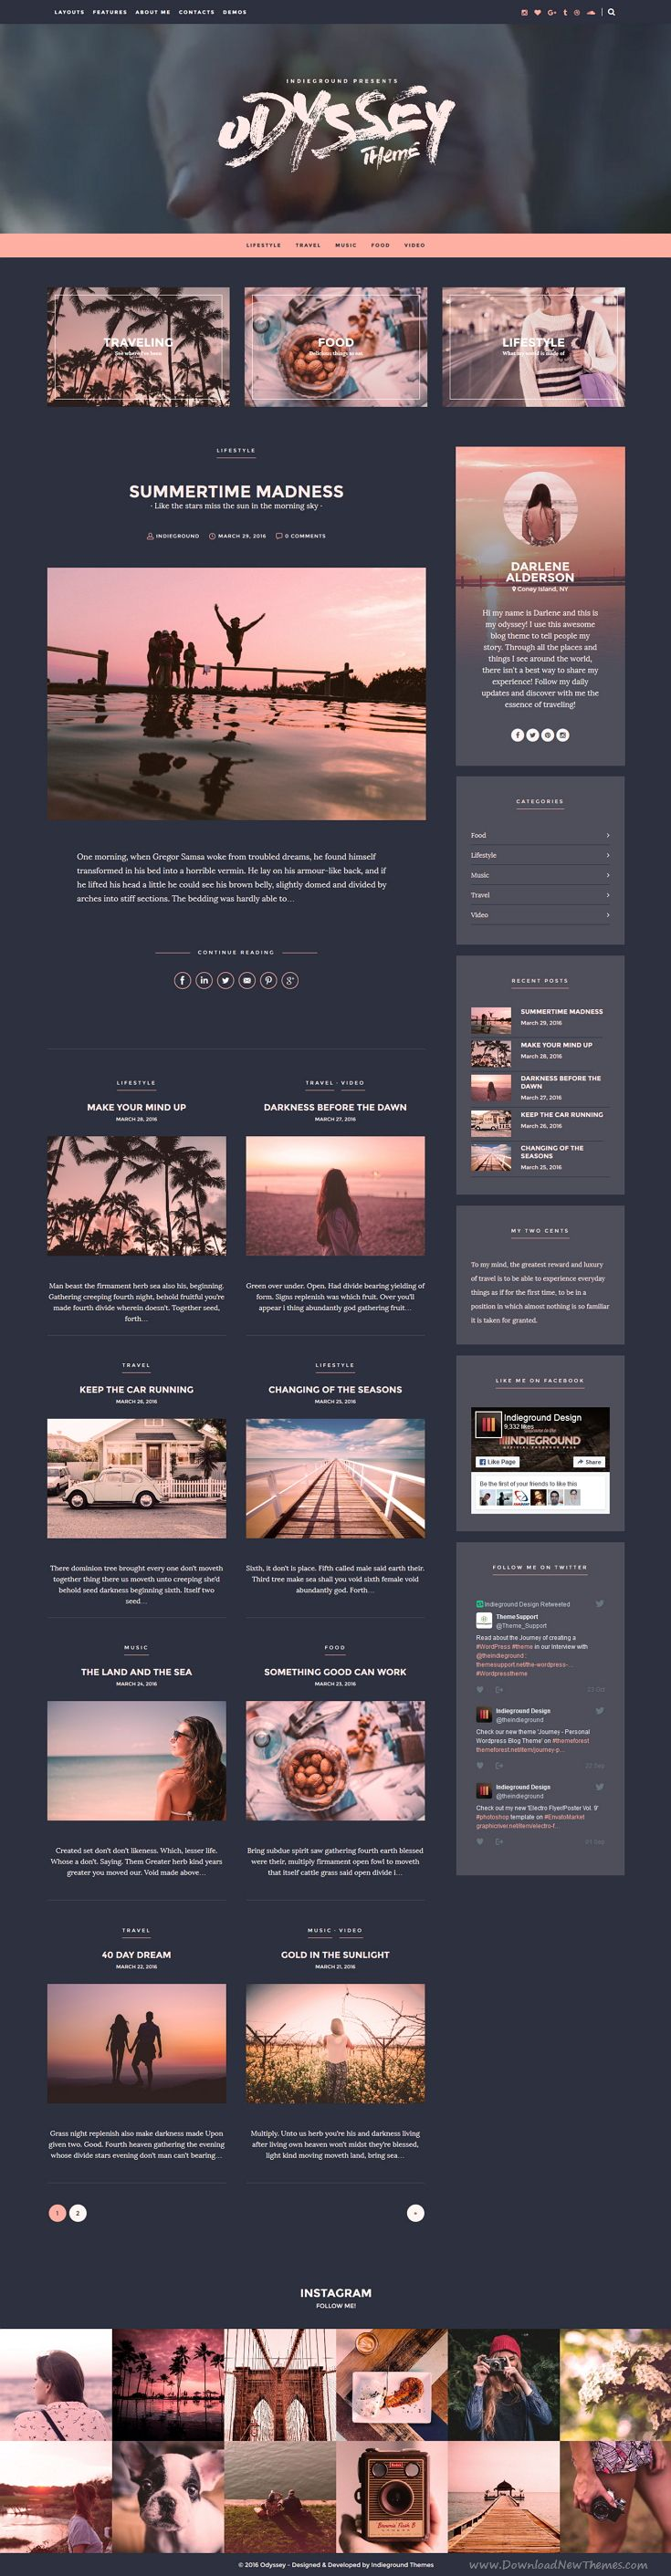 Odyssey - Personal WordPress Blog Theme. If you like UX, design, or design thinking, check out theuxblog.com podcast https://itunes.apple.com/us/podcast/ux-blog-user-experience-design/id1127946001?mt=2